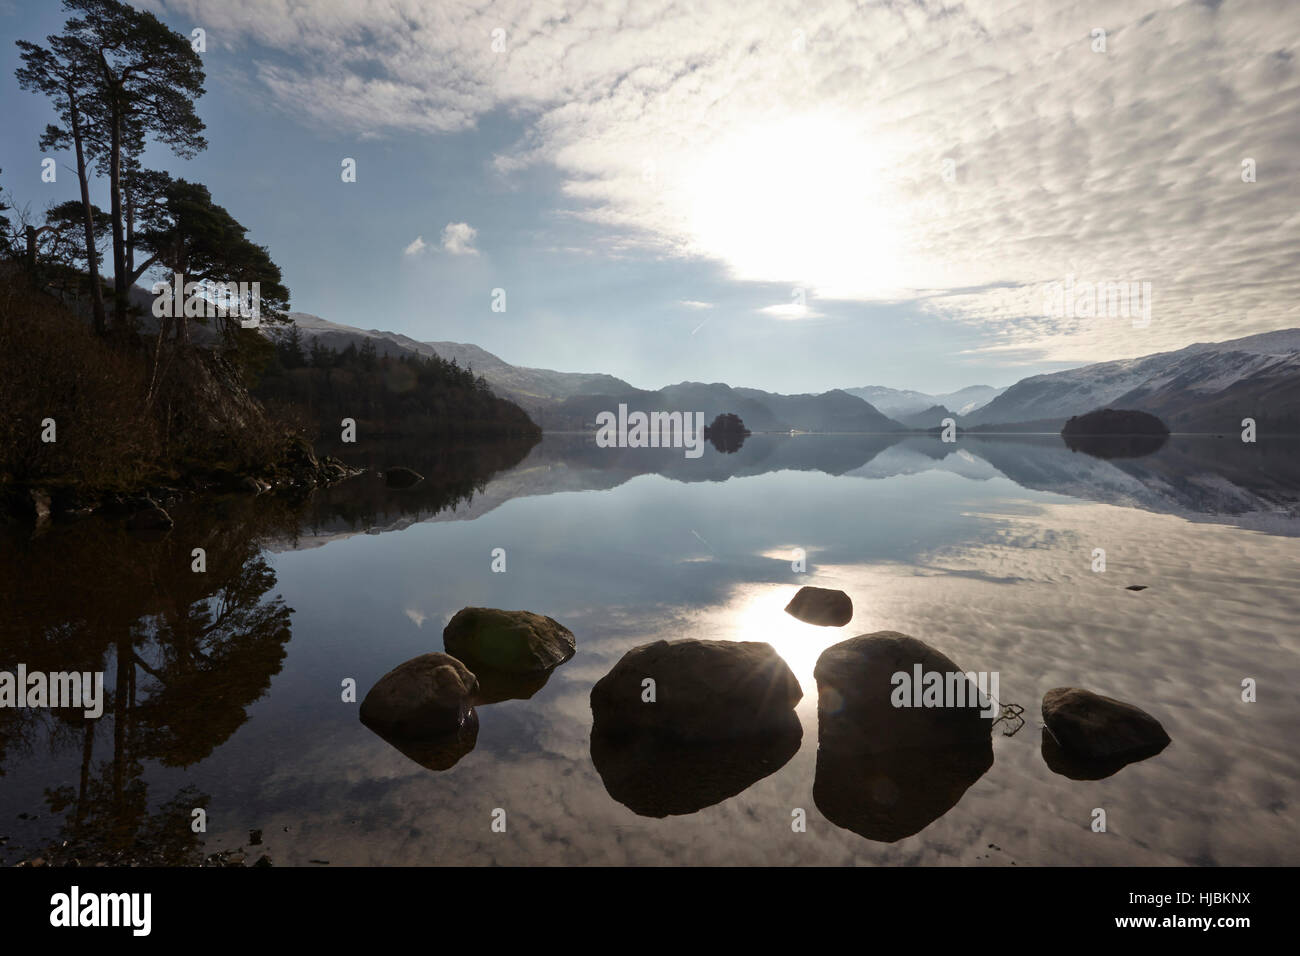 Mountains rocks and trees reflected in the calm surface of Derwent Water, Keswick, Cumbria, Lake District, England - Stock Image